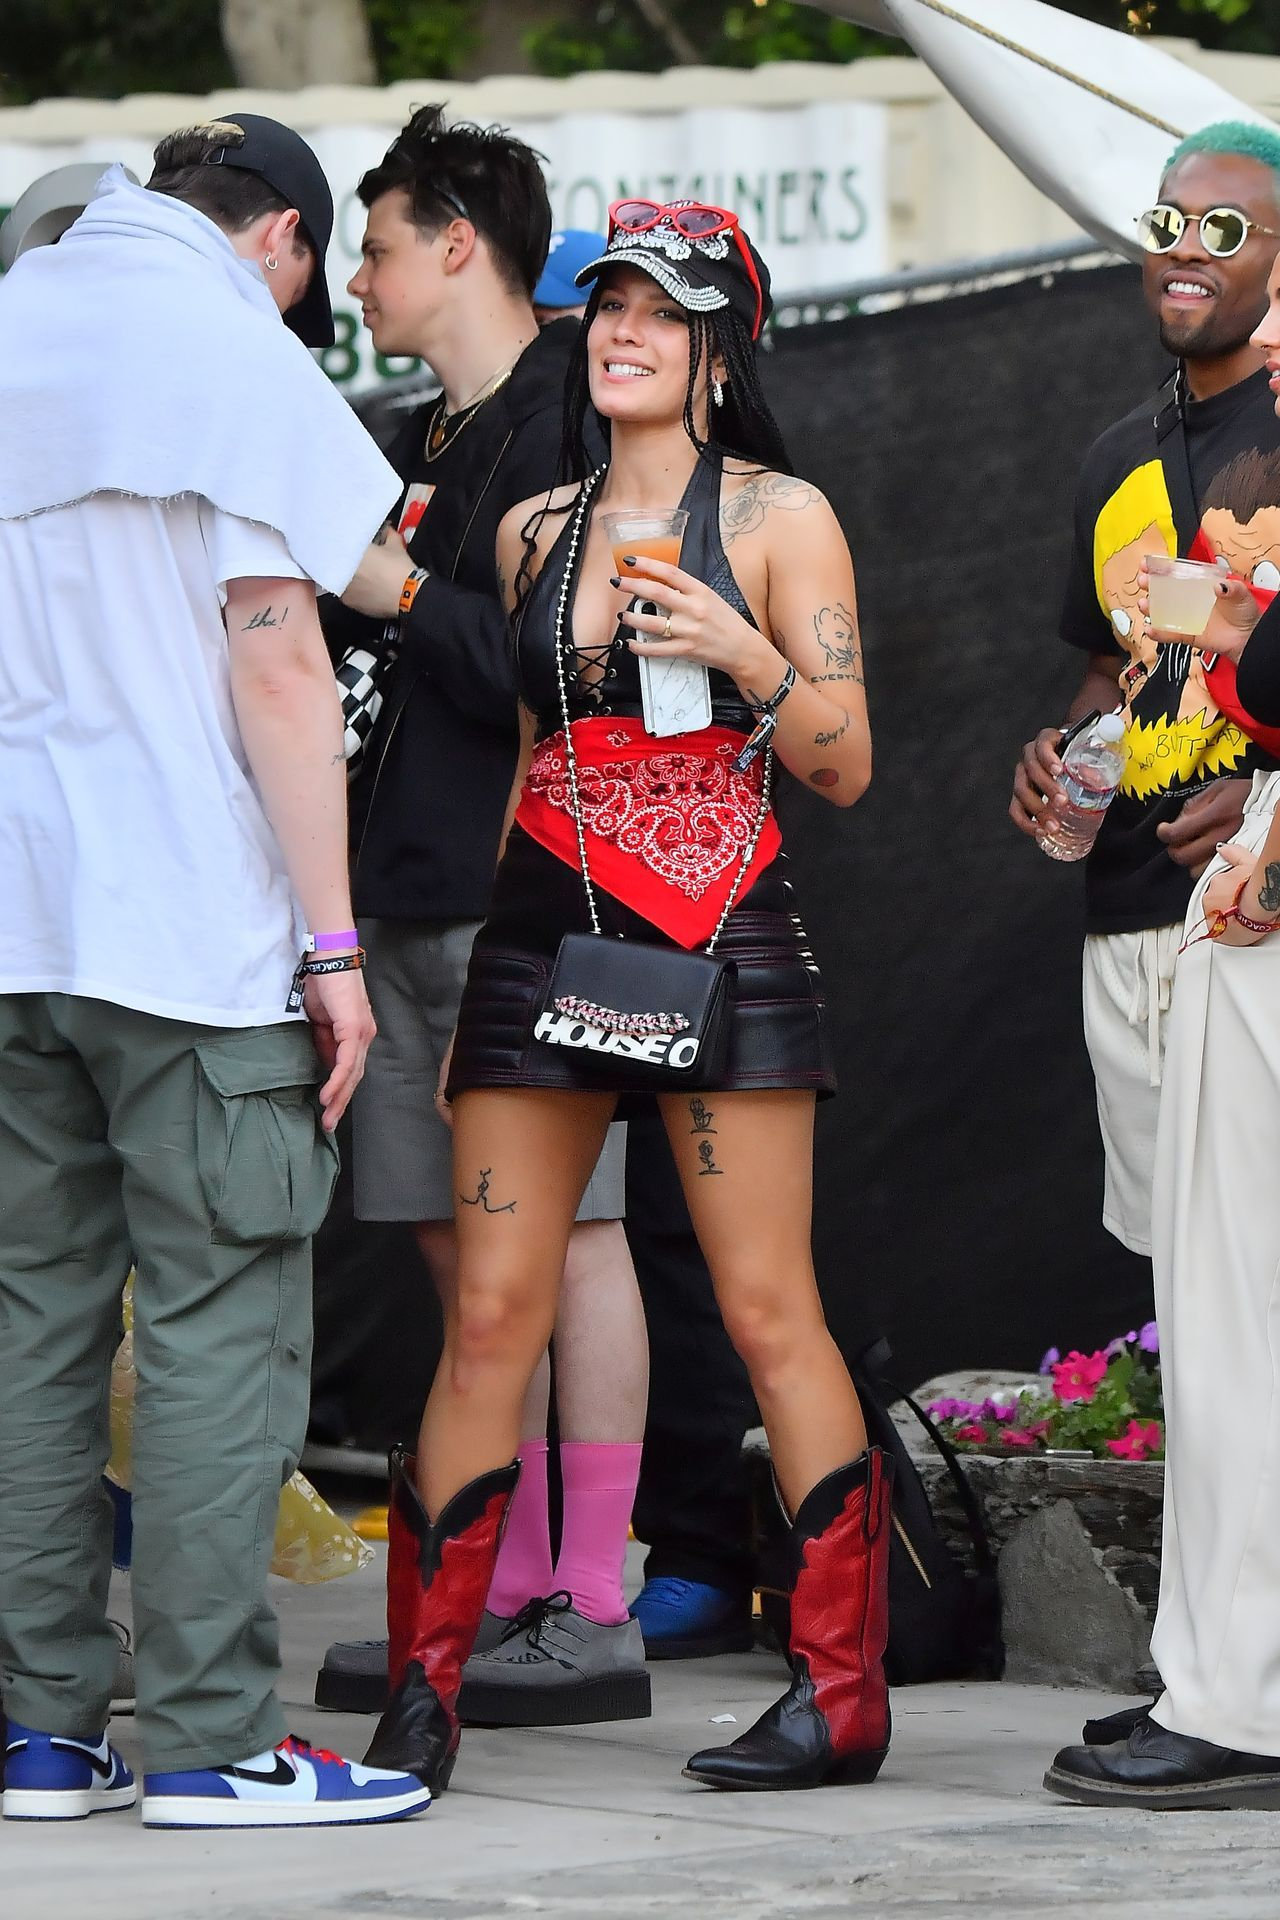 Halsey And Yungblud At Coachella Music Festival 04 13 2019